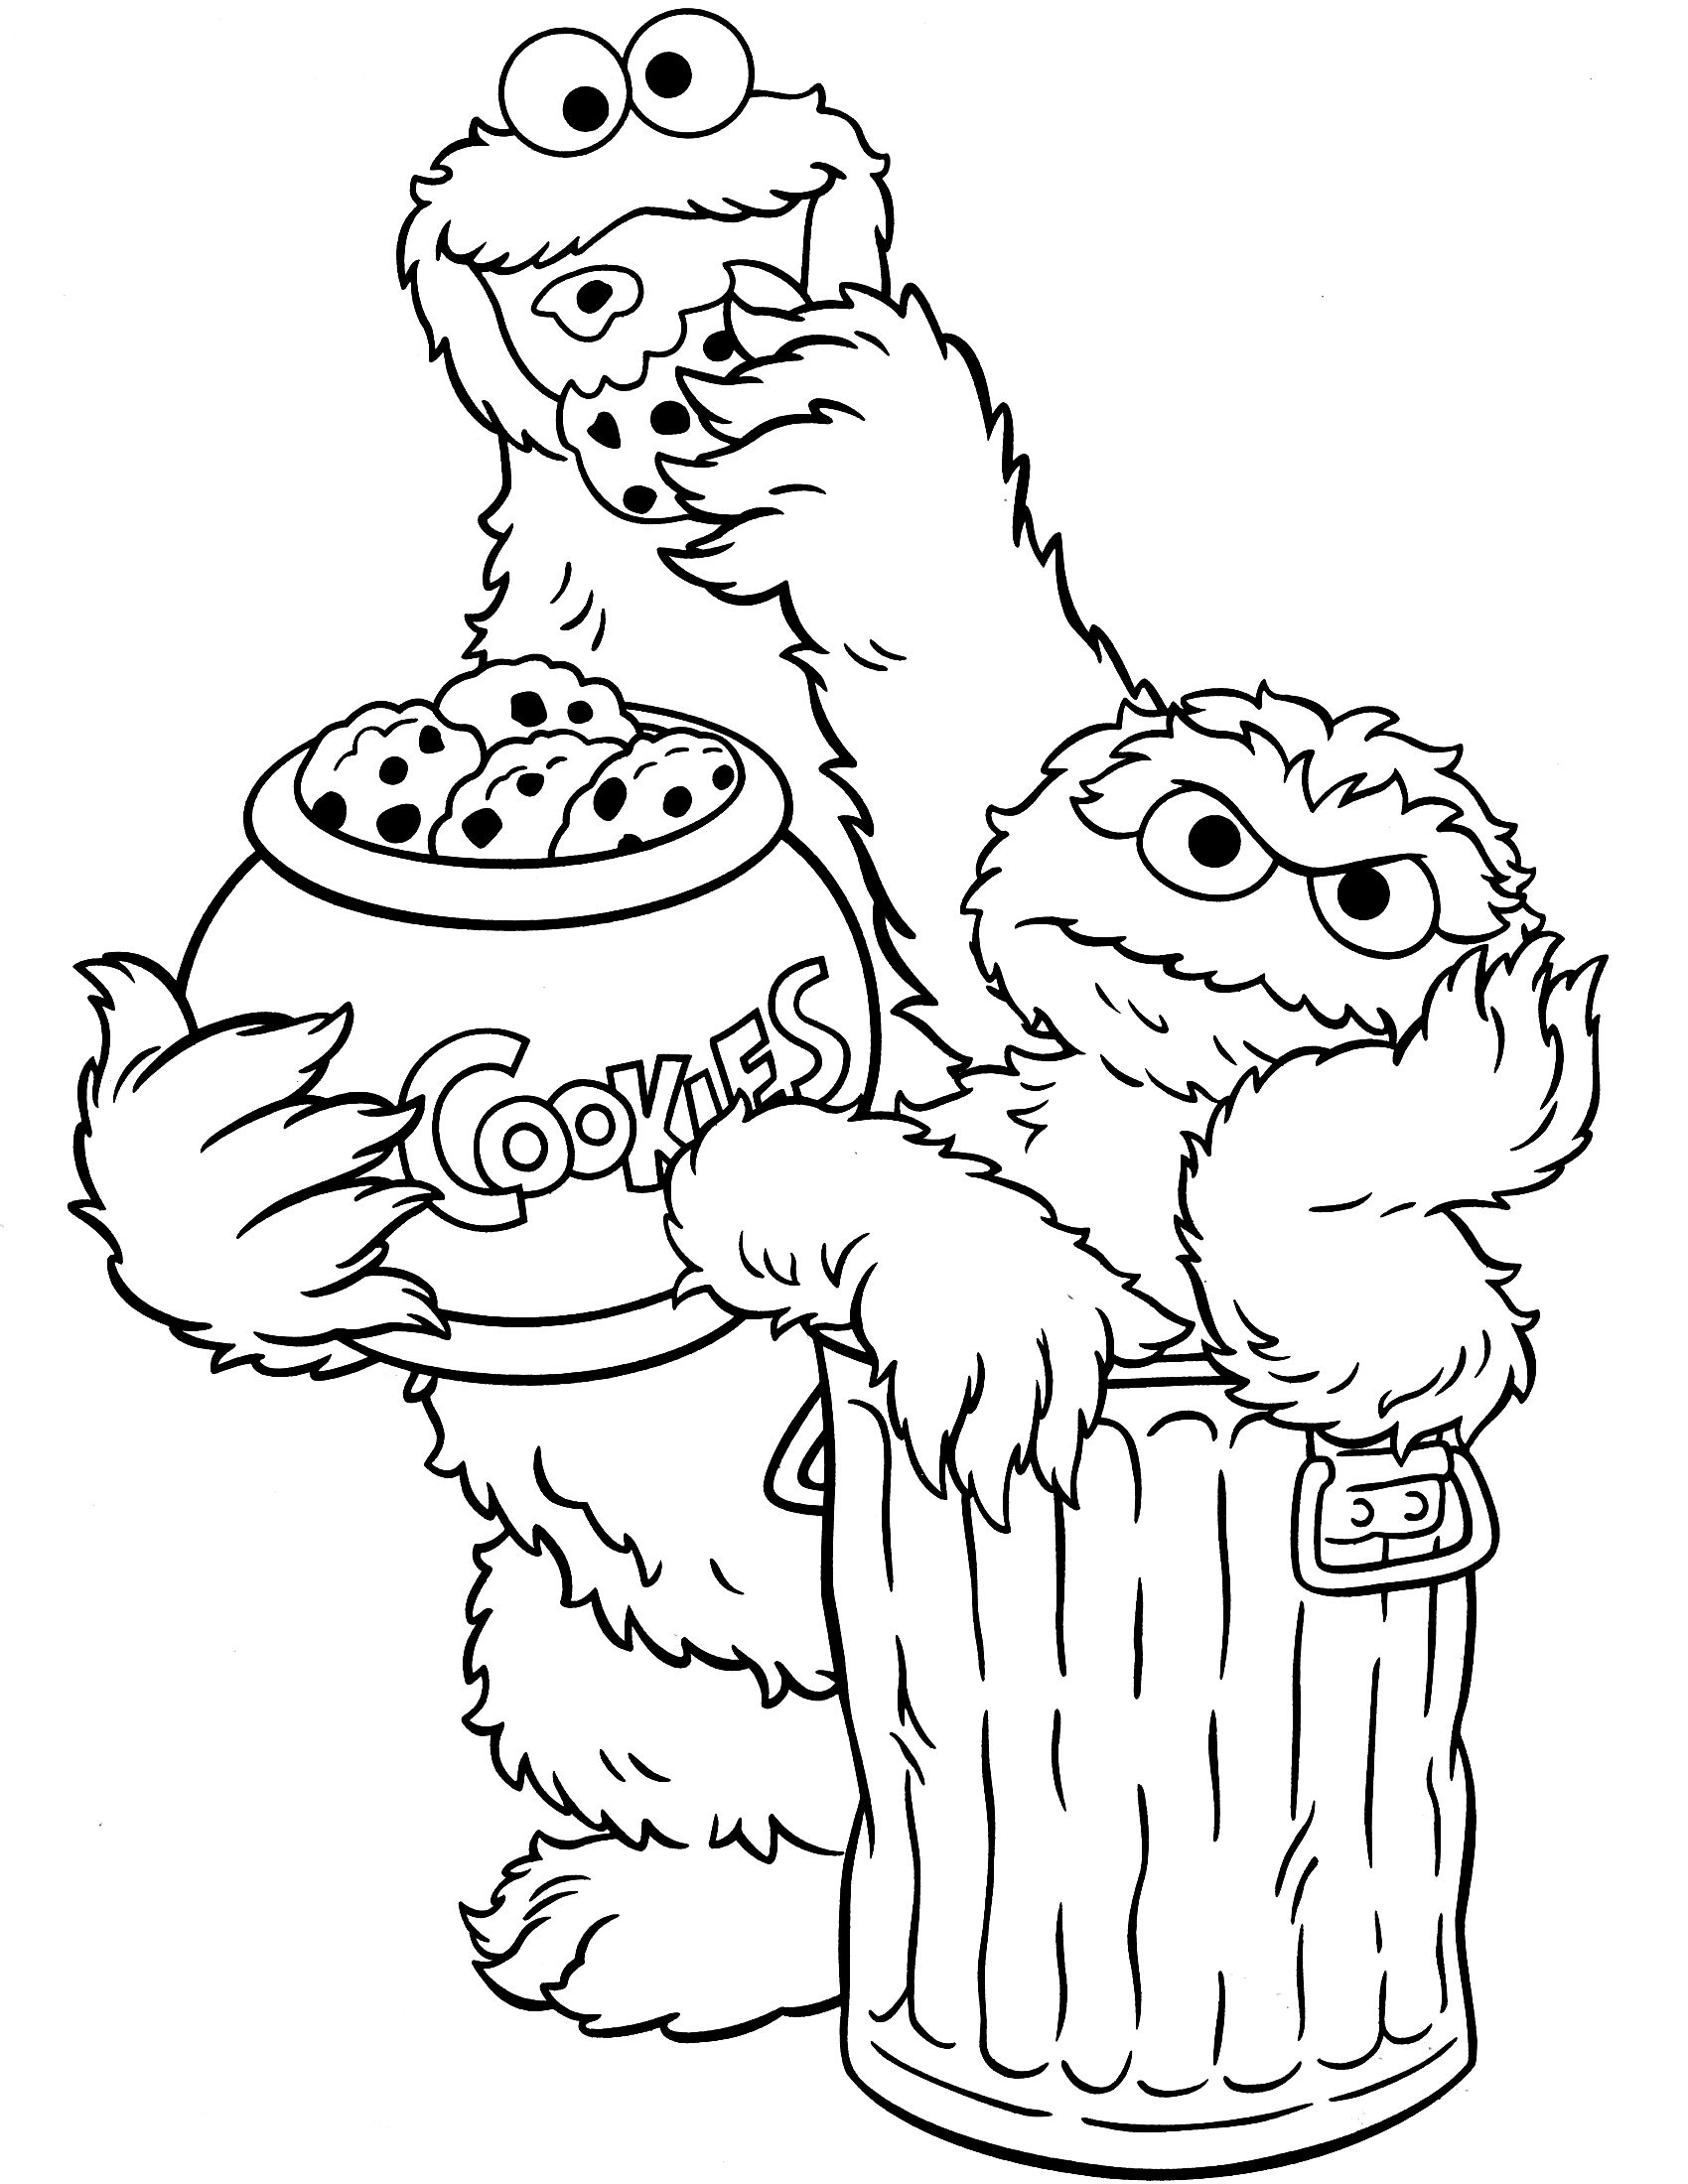 coloring pages oscar the grouch - photo#26